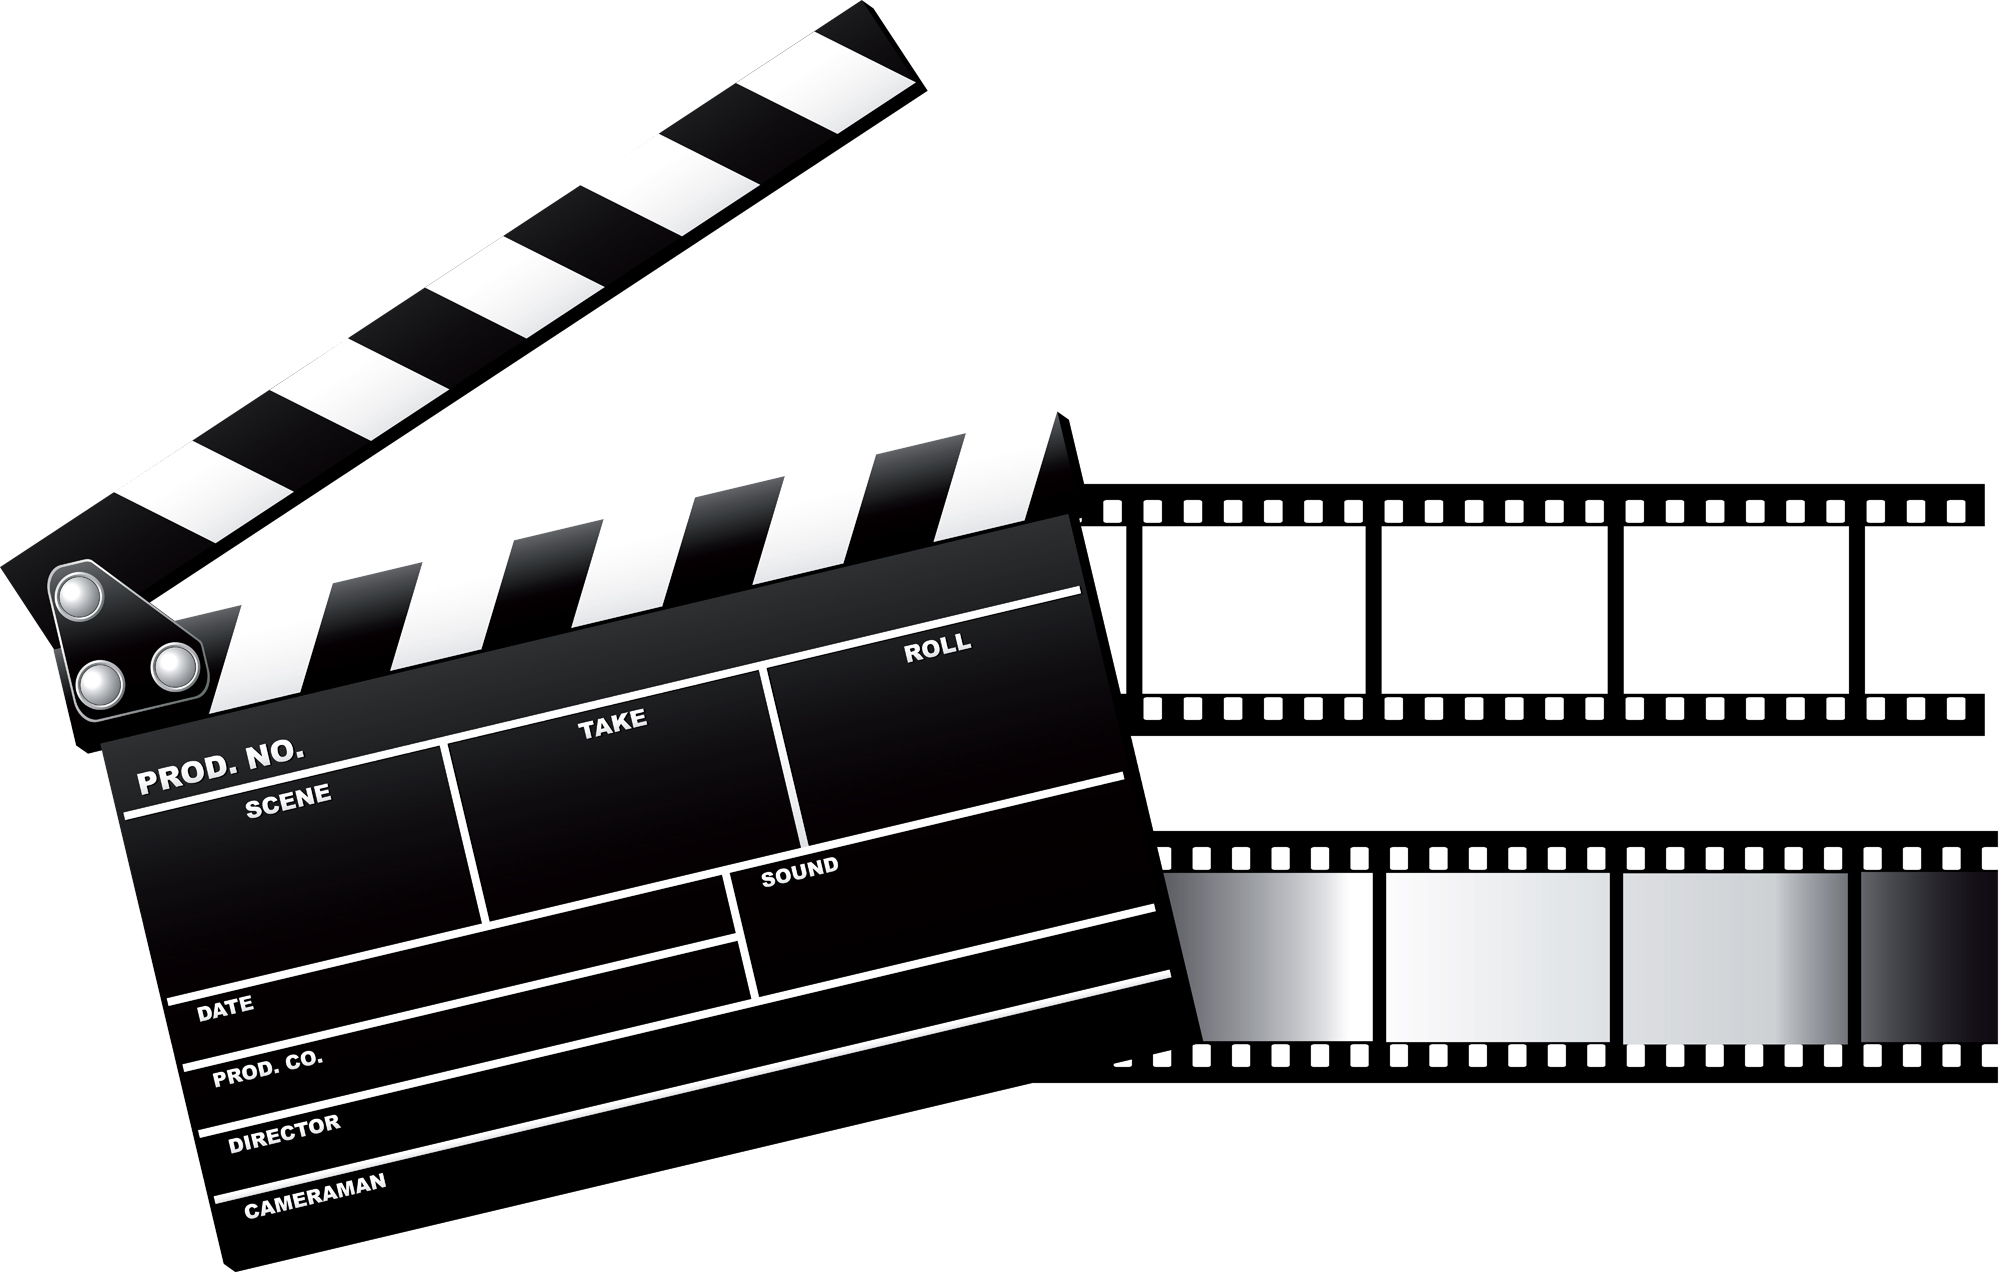 hight resolution of 2000x1272 free movie clipart image